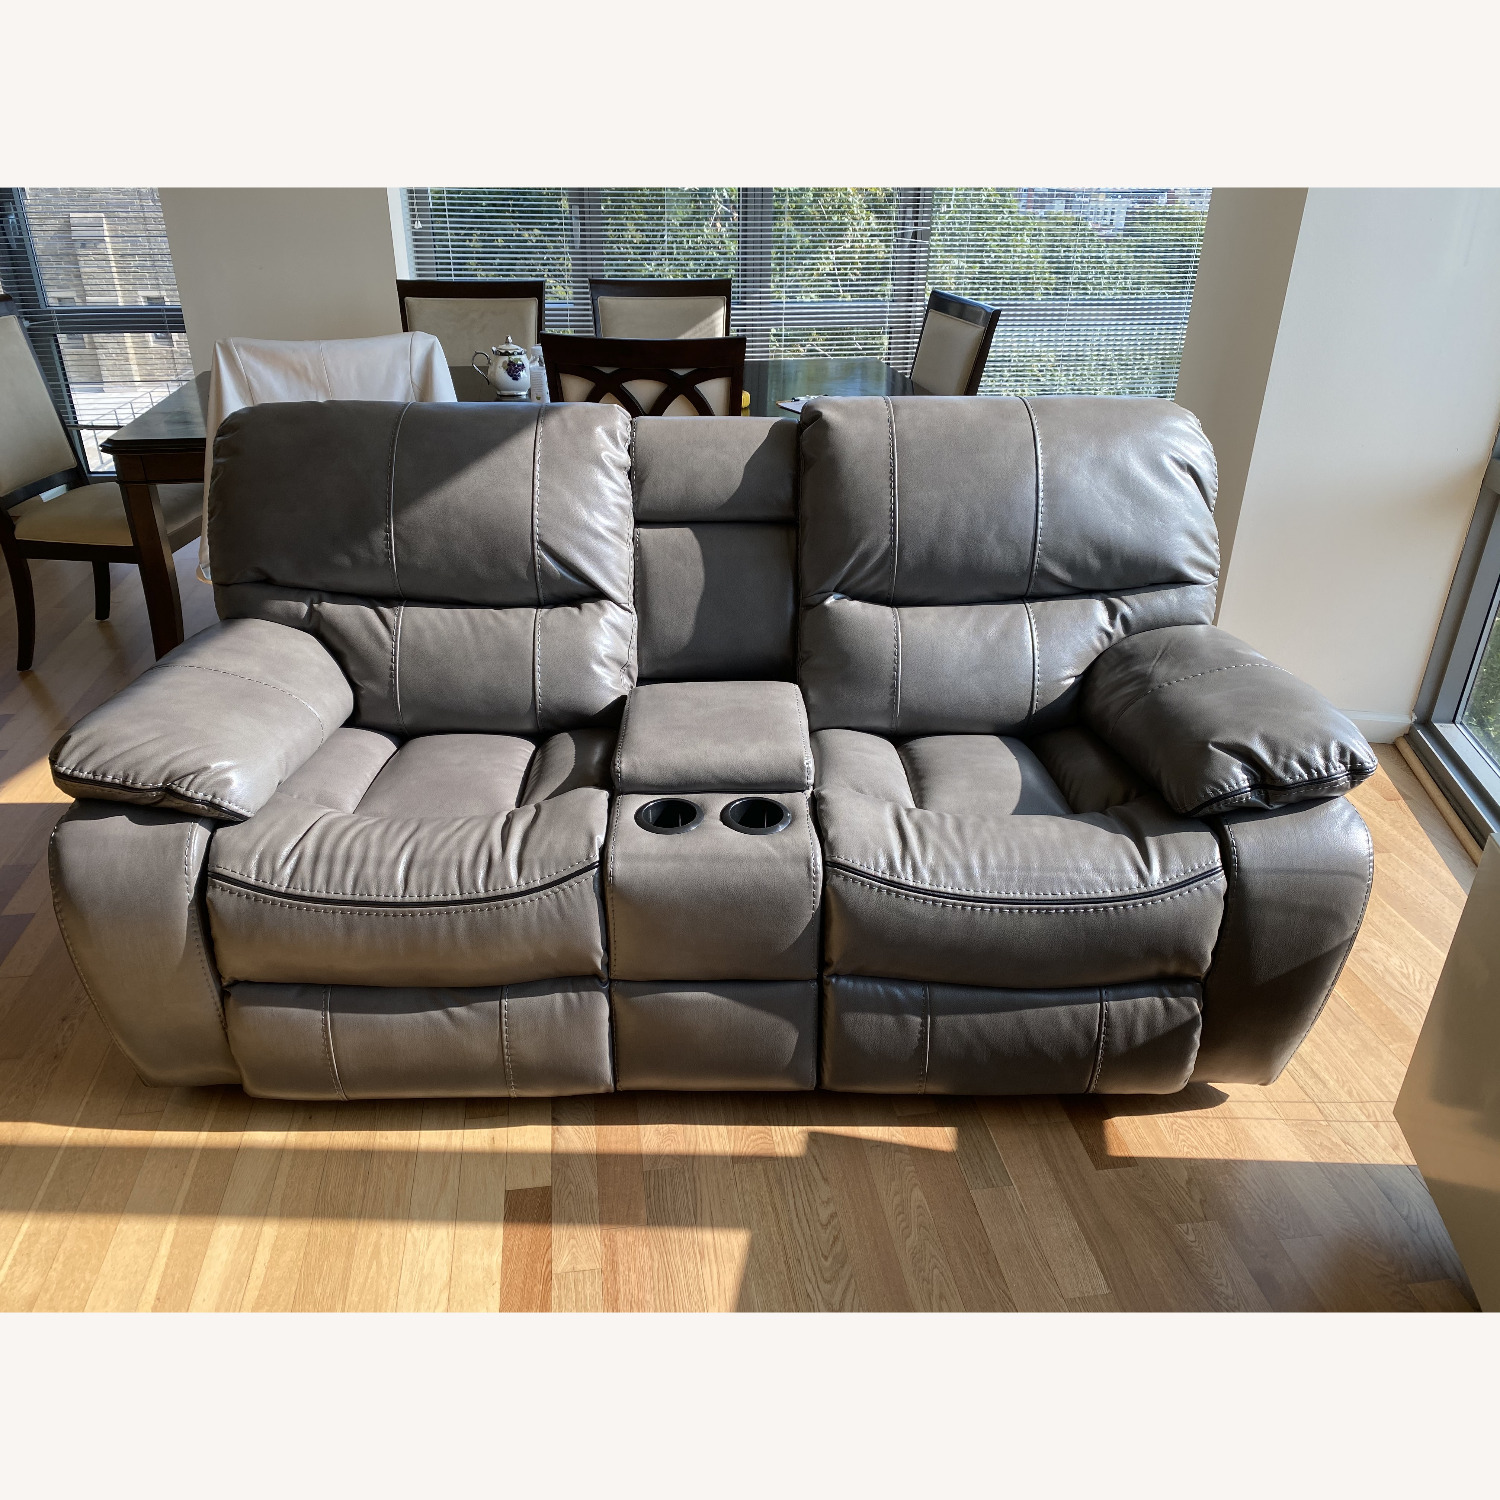 Grey Leather Recliner Sofa - image-1